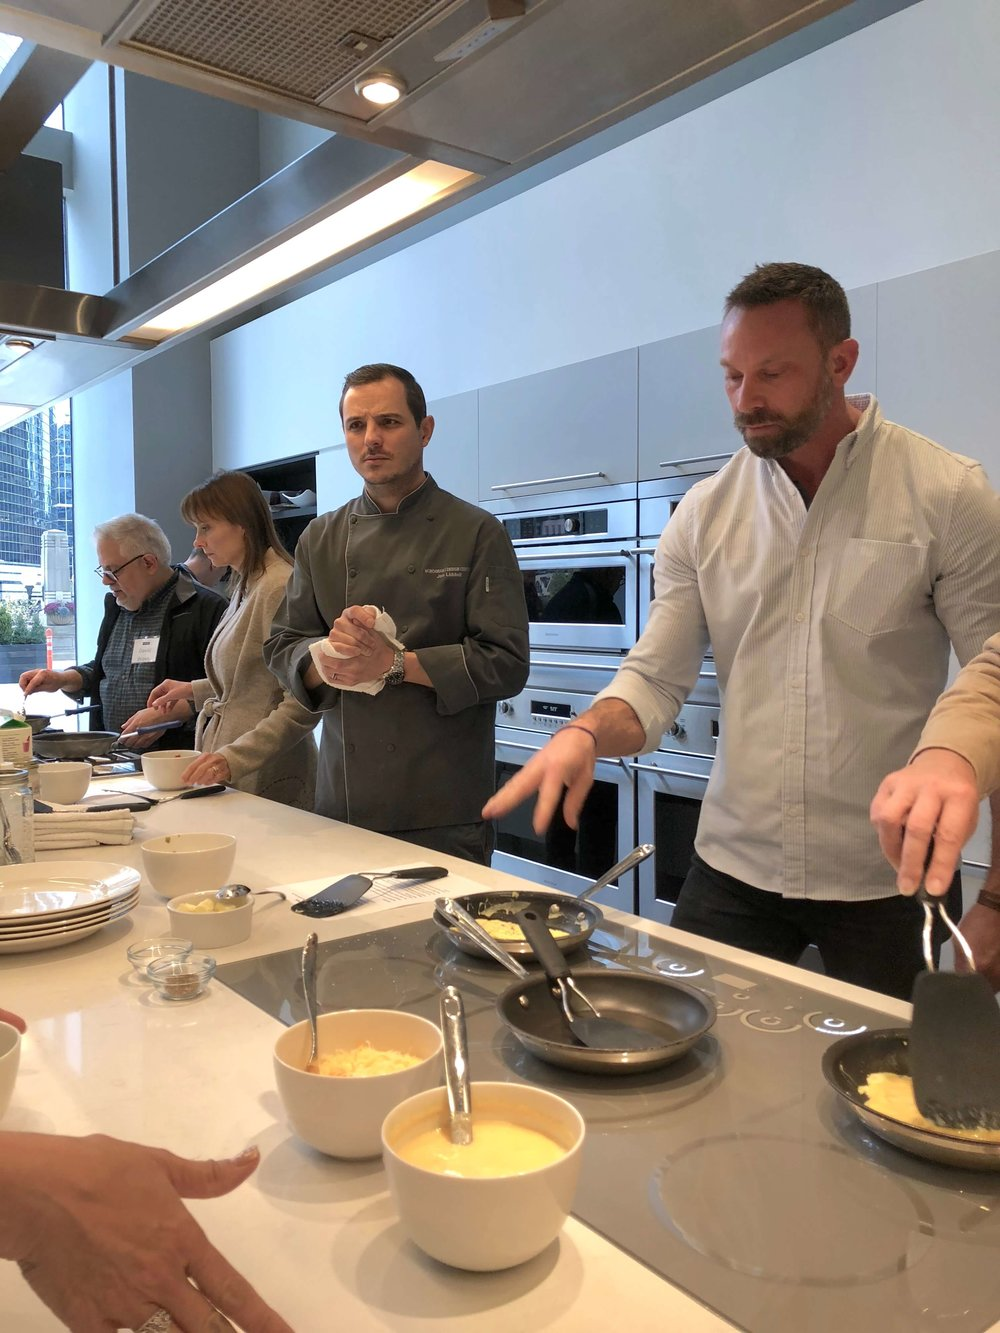 Cooking with a chef at Monogram Appliances showroom #inductioncooktop #monogramappliances